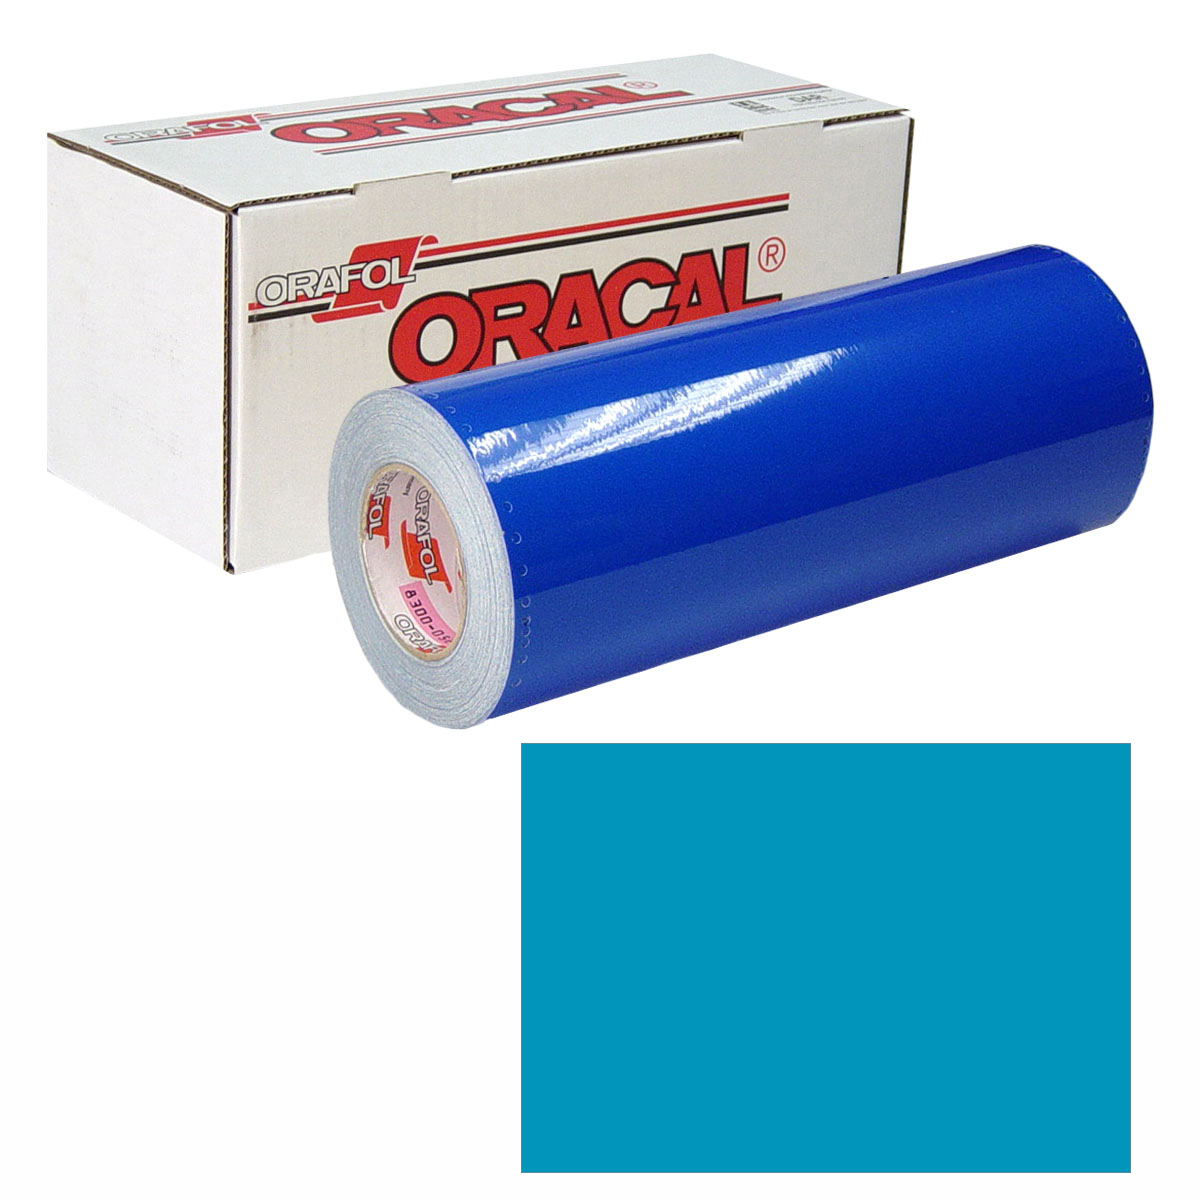 ORACAL 631 Unp 48in X 50yd 174 Teal